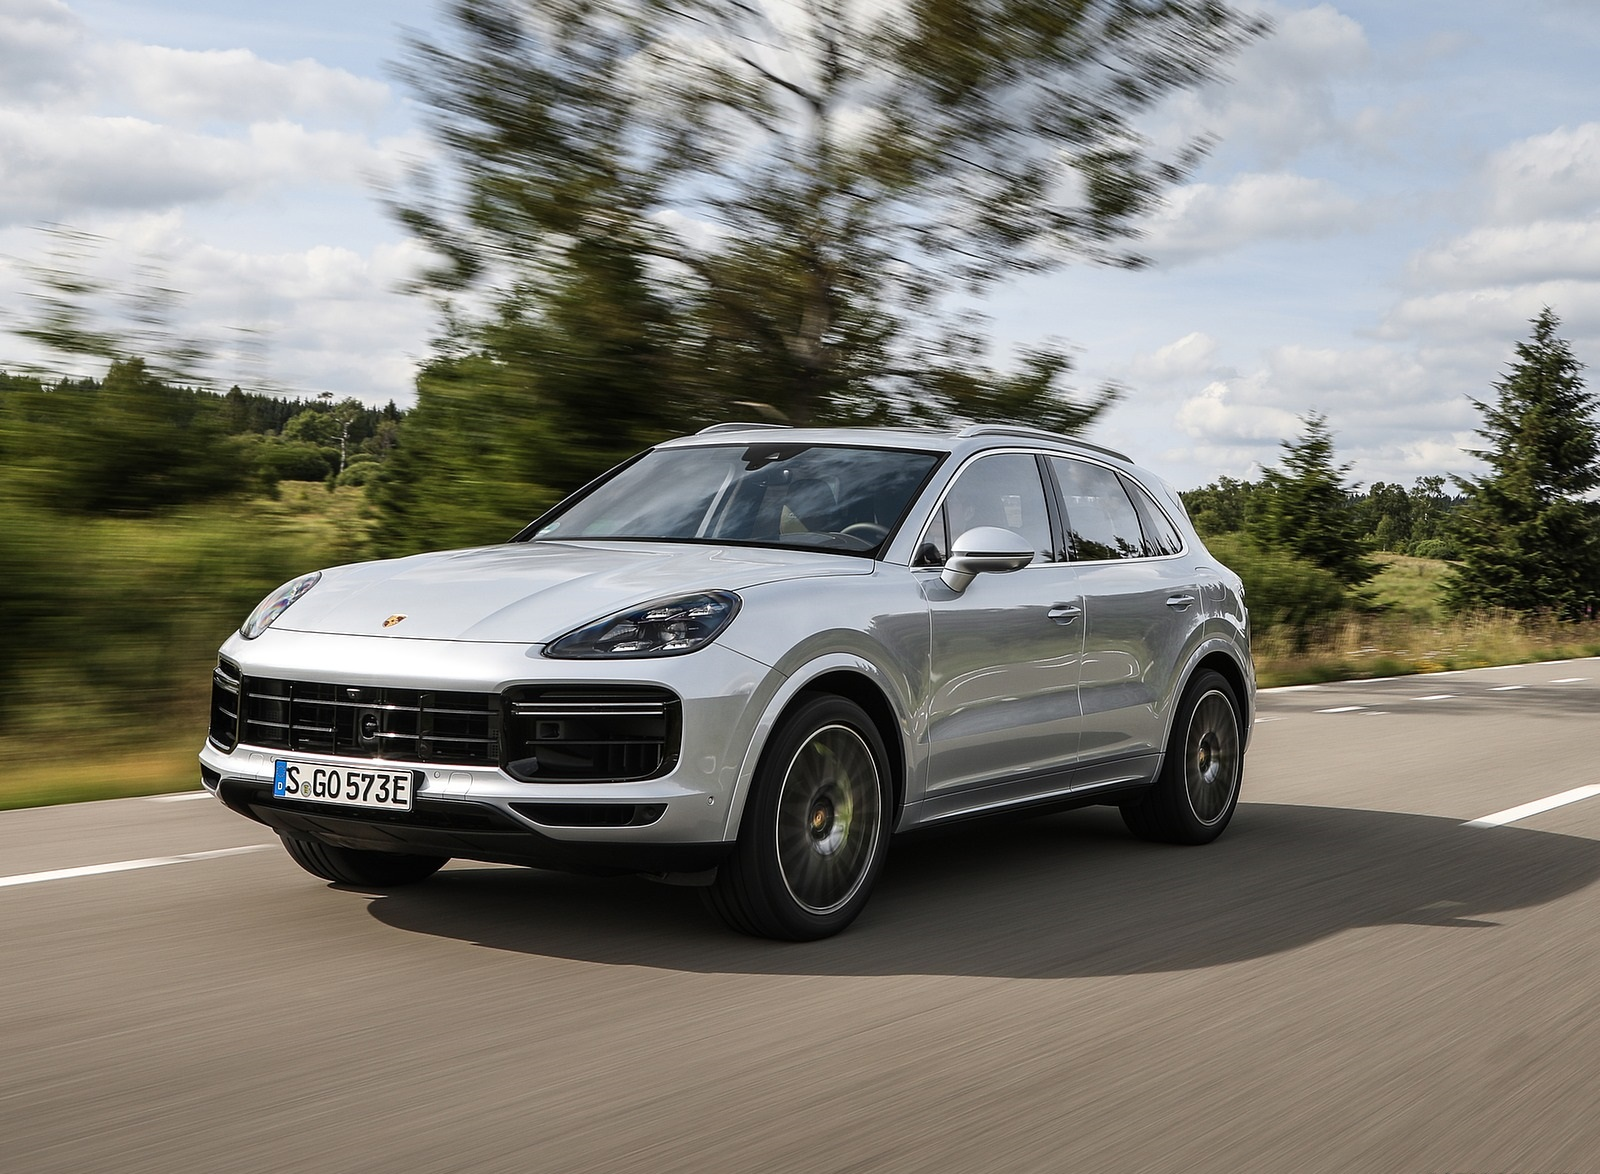 2020 Porsche Cayenne Turbo S E-Hybrid Front Three-Quarter Wallpapers (2)